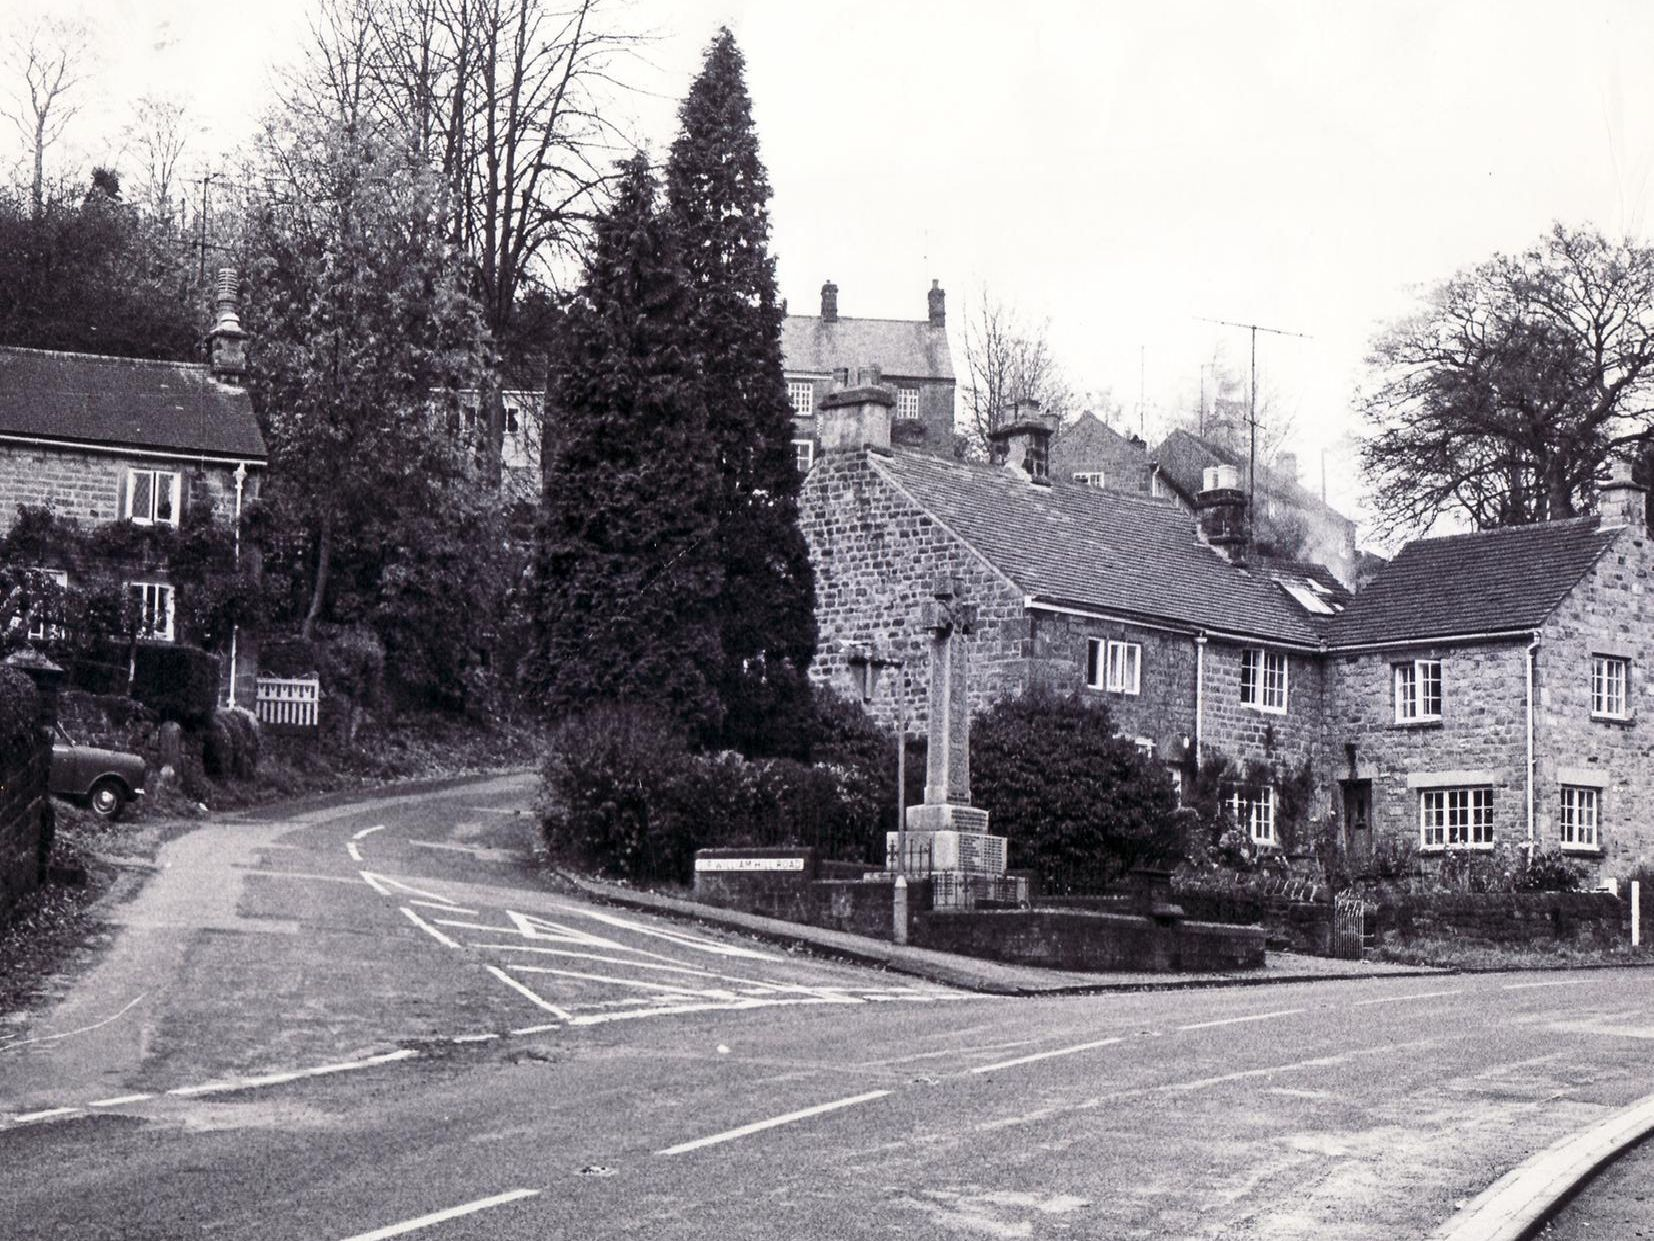 1972: This is Grindleford village back in the 70s.